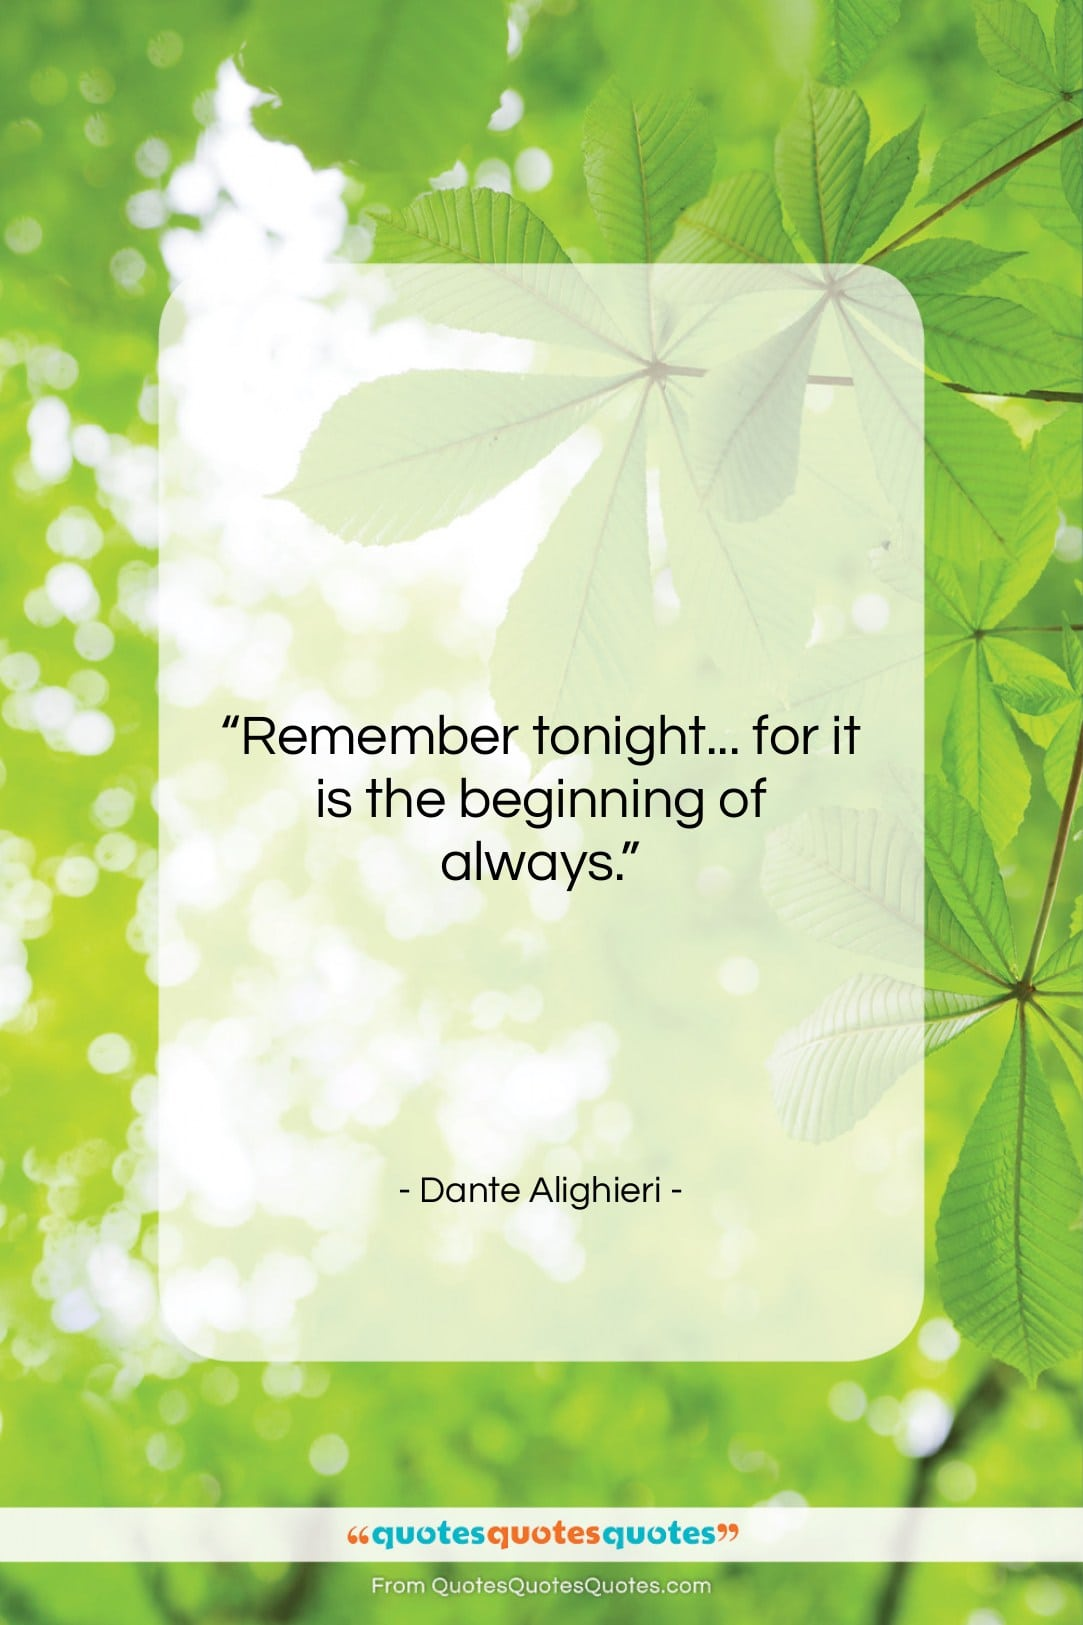 """Dante Alighieri quote: """"Remember tonight… for it is the beginning…""""- at QuotesQuotesQuotes.com"""